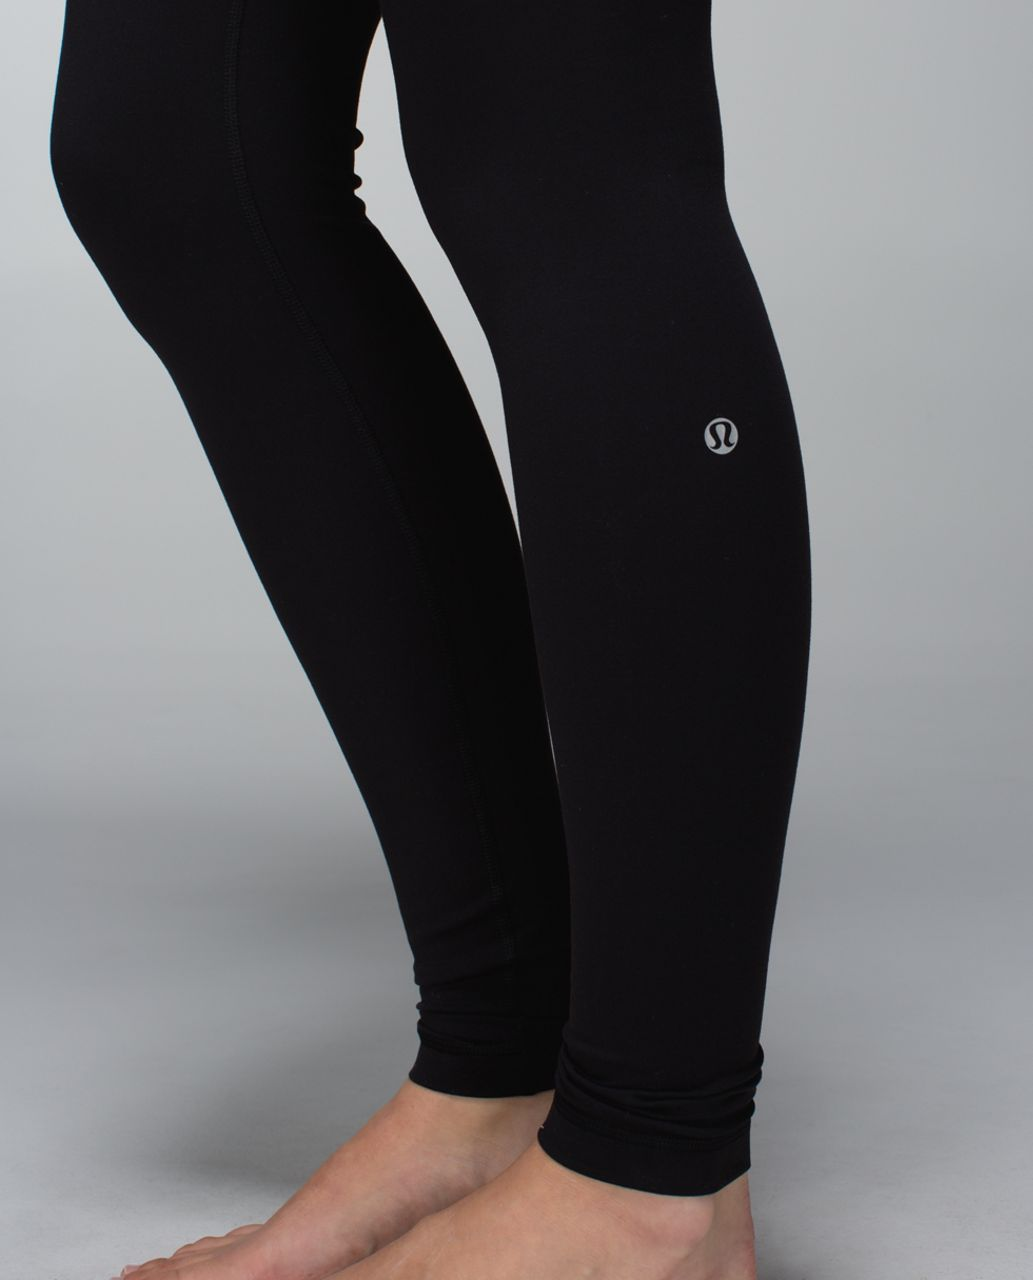 Lululemon Wunder Under Pant *Full-On Luon - Black / Fa14 Quilt 4